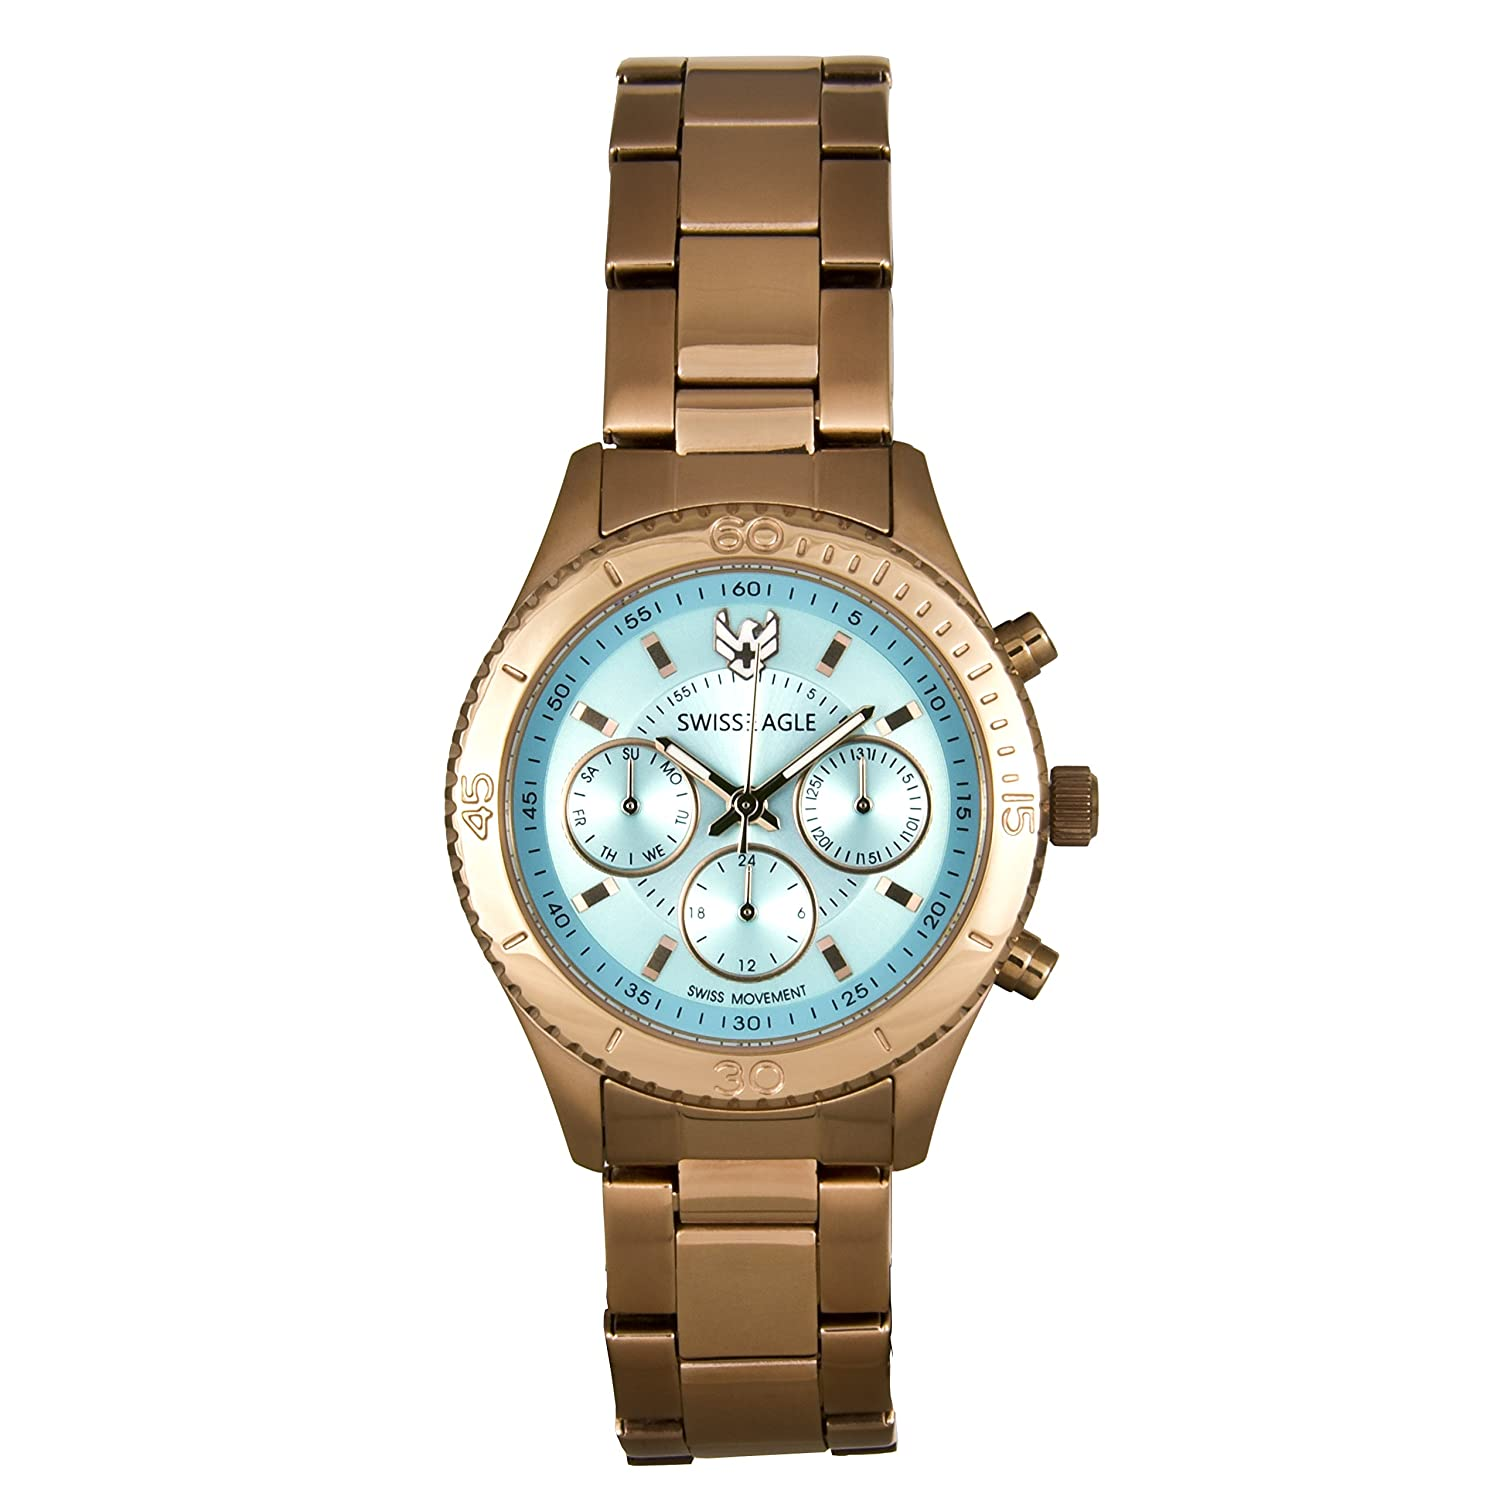 at dp watch analog watches prices amazon in online buy india mmwhel green eagle swiss s women womens se low dial